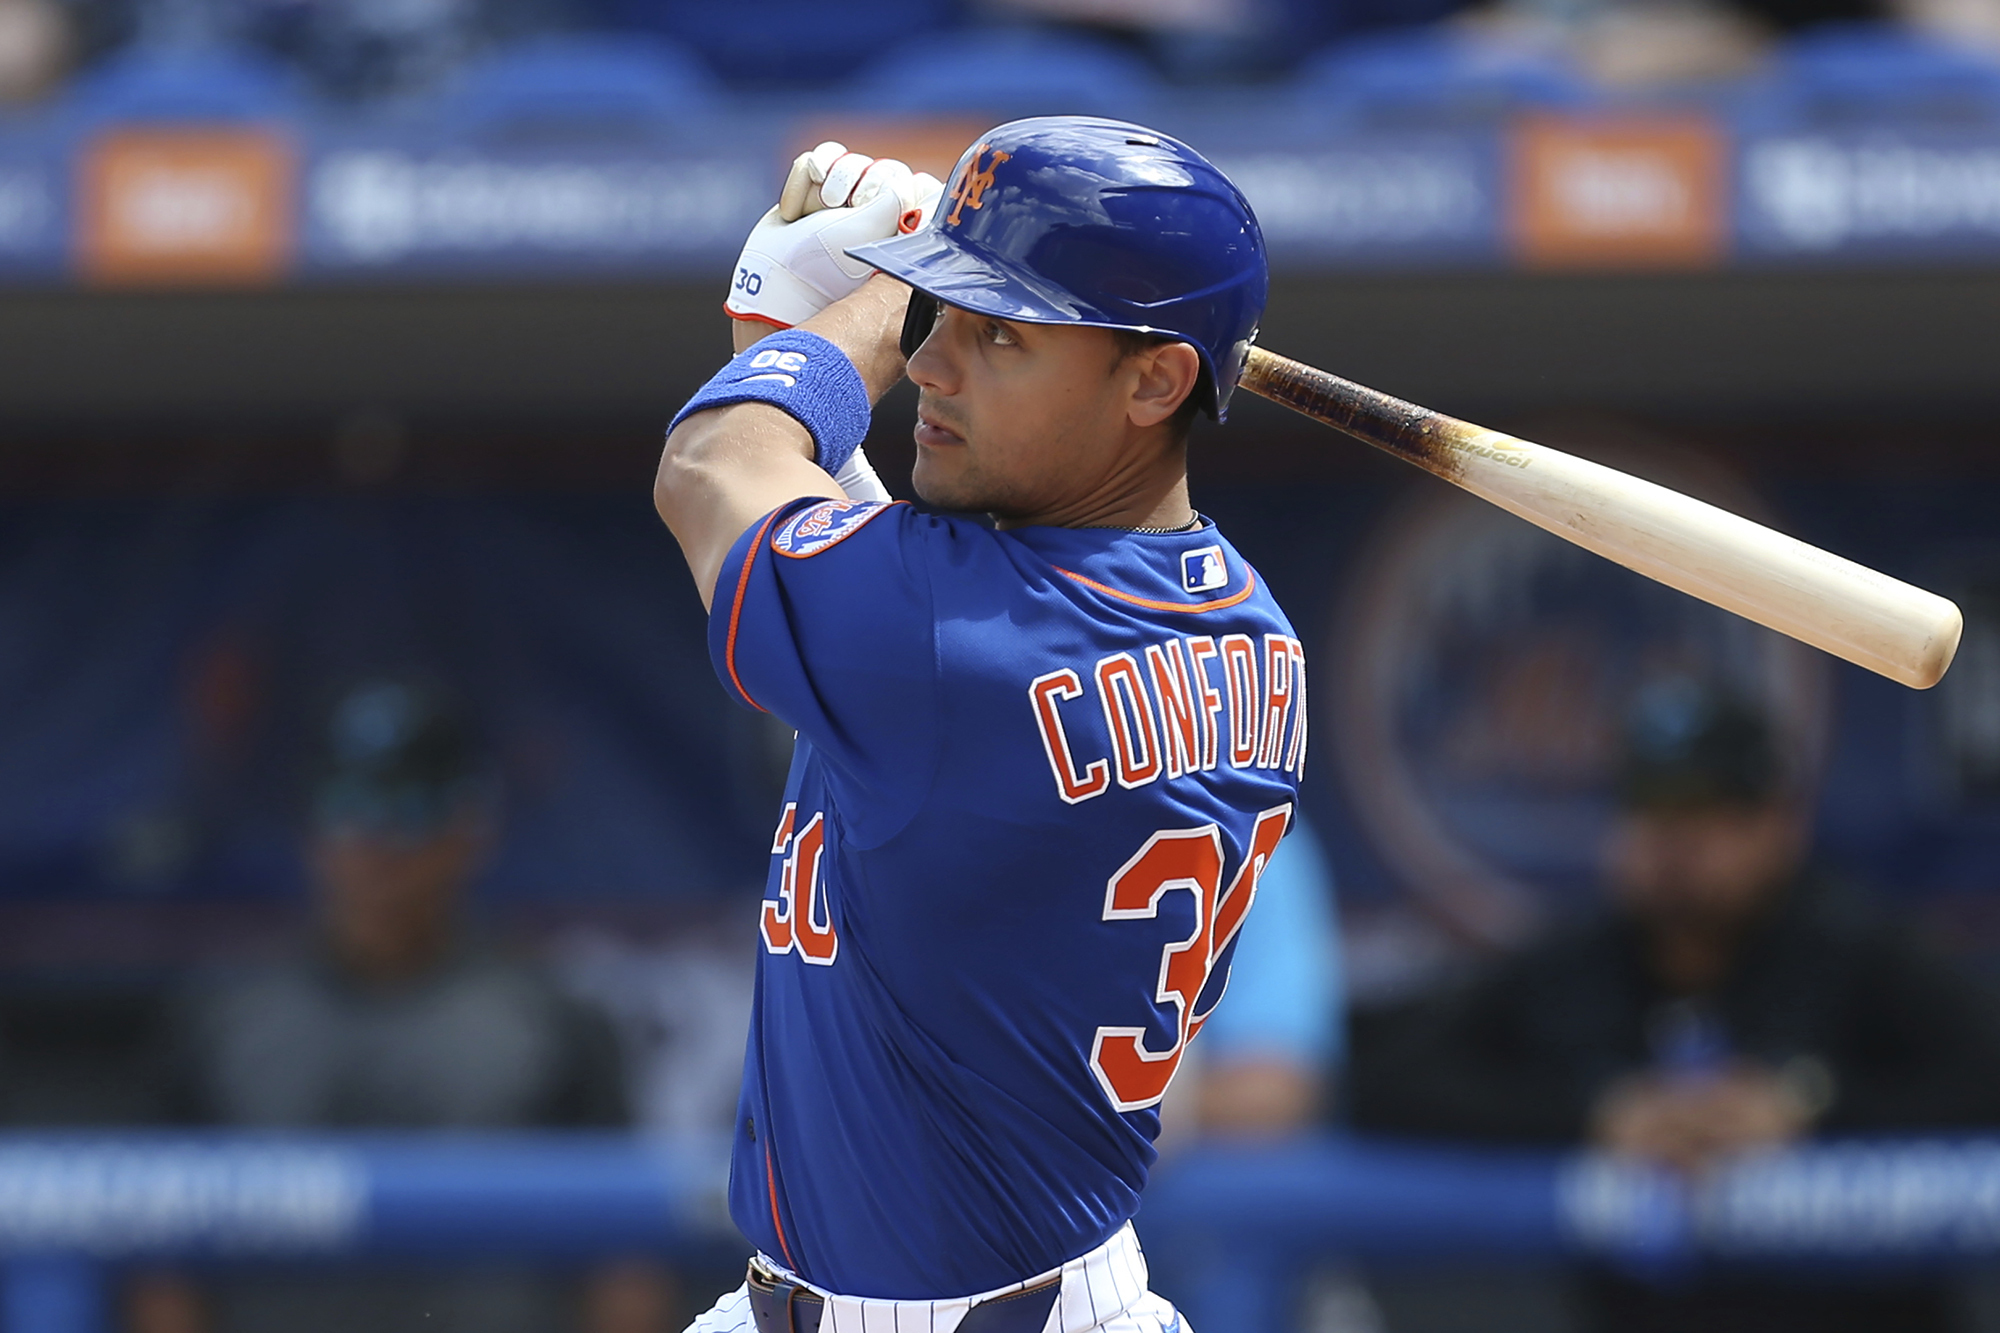 Mets' Conforto strains oblique muscle, opening day not clear